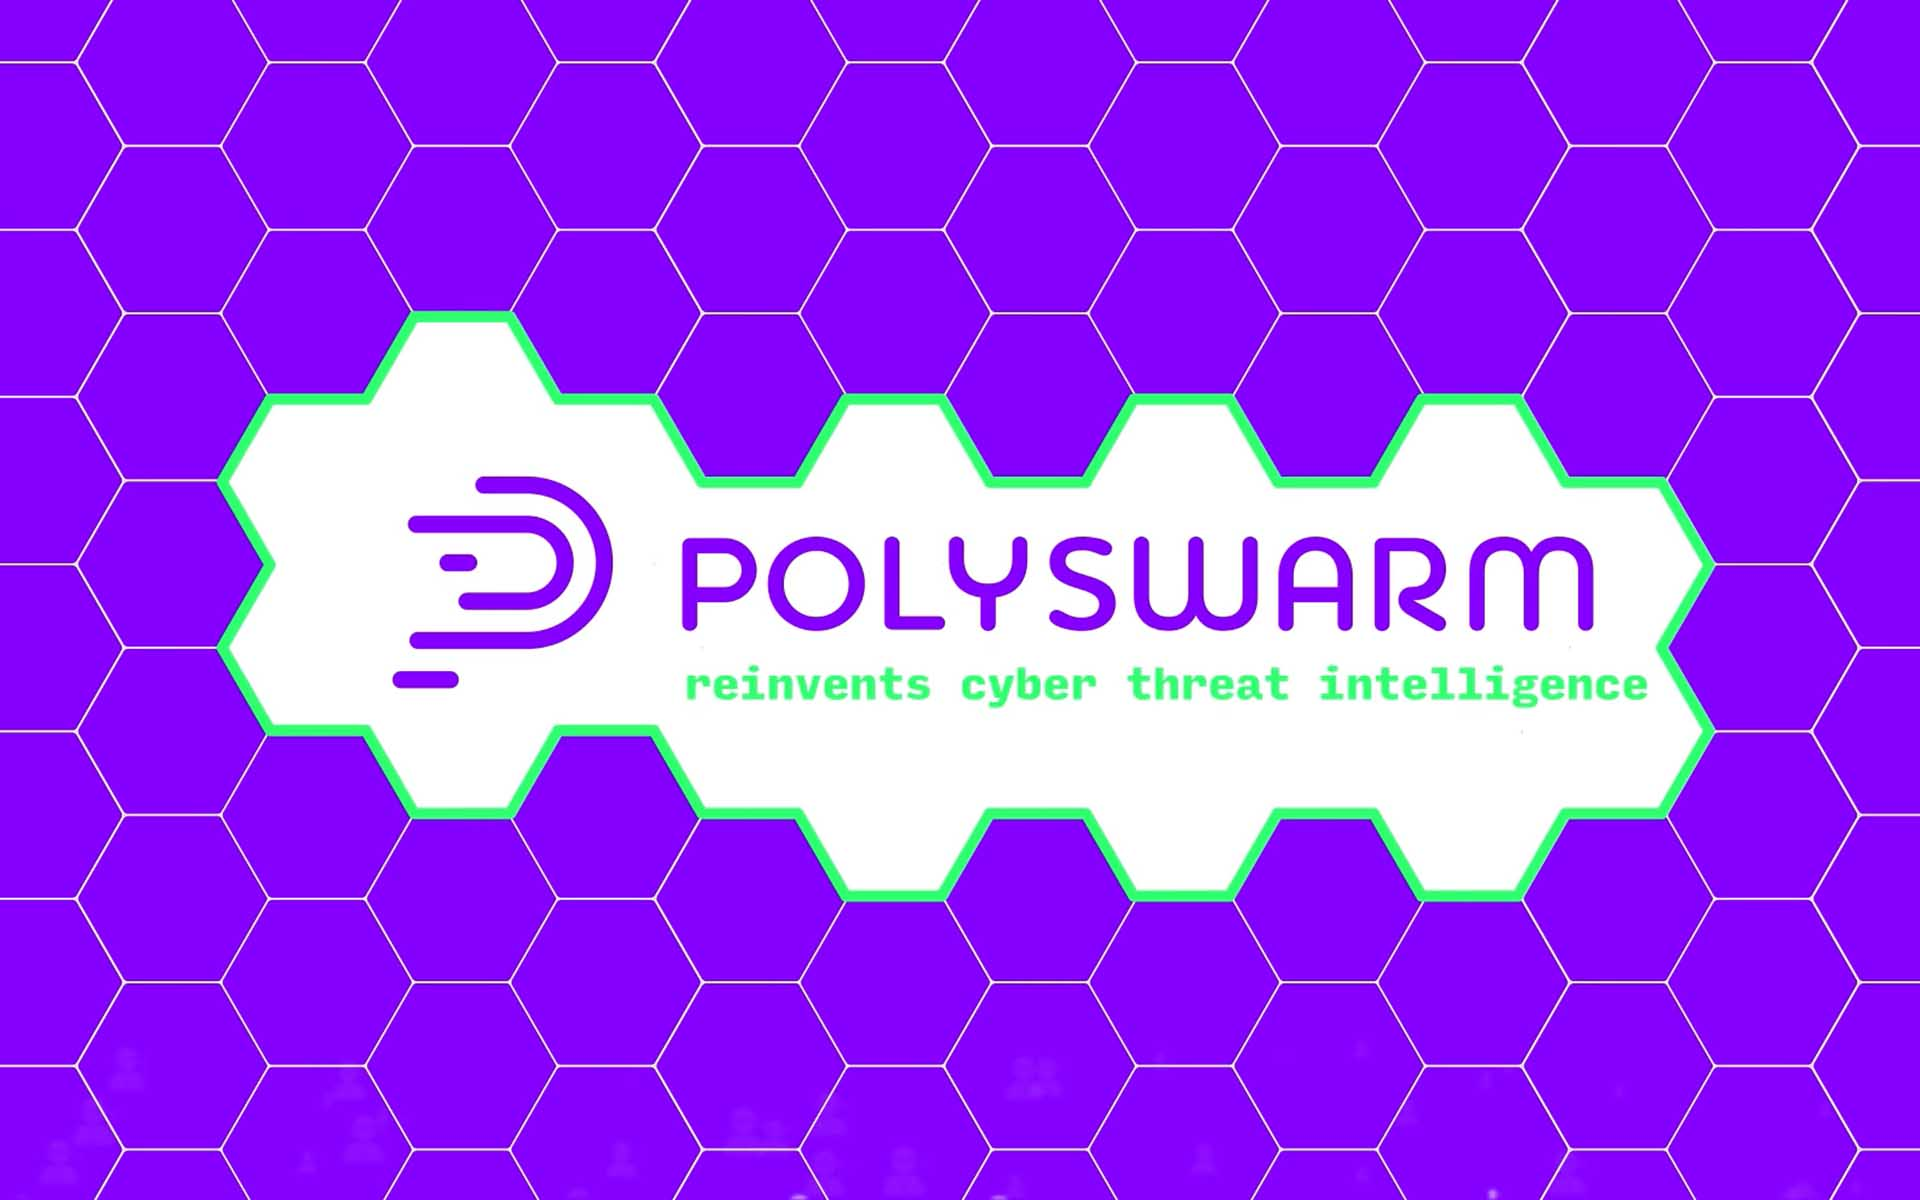 PolySwarm Raises $25.94 Million in Public Token Sale to Decentralize Cybersecurity